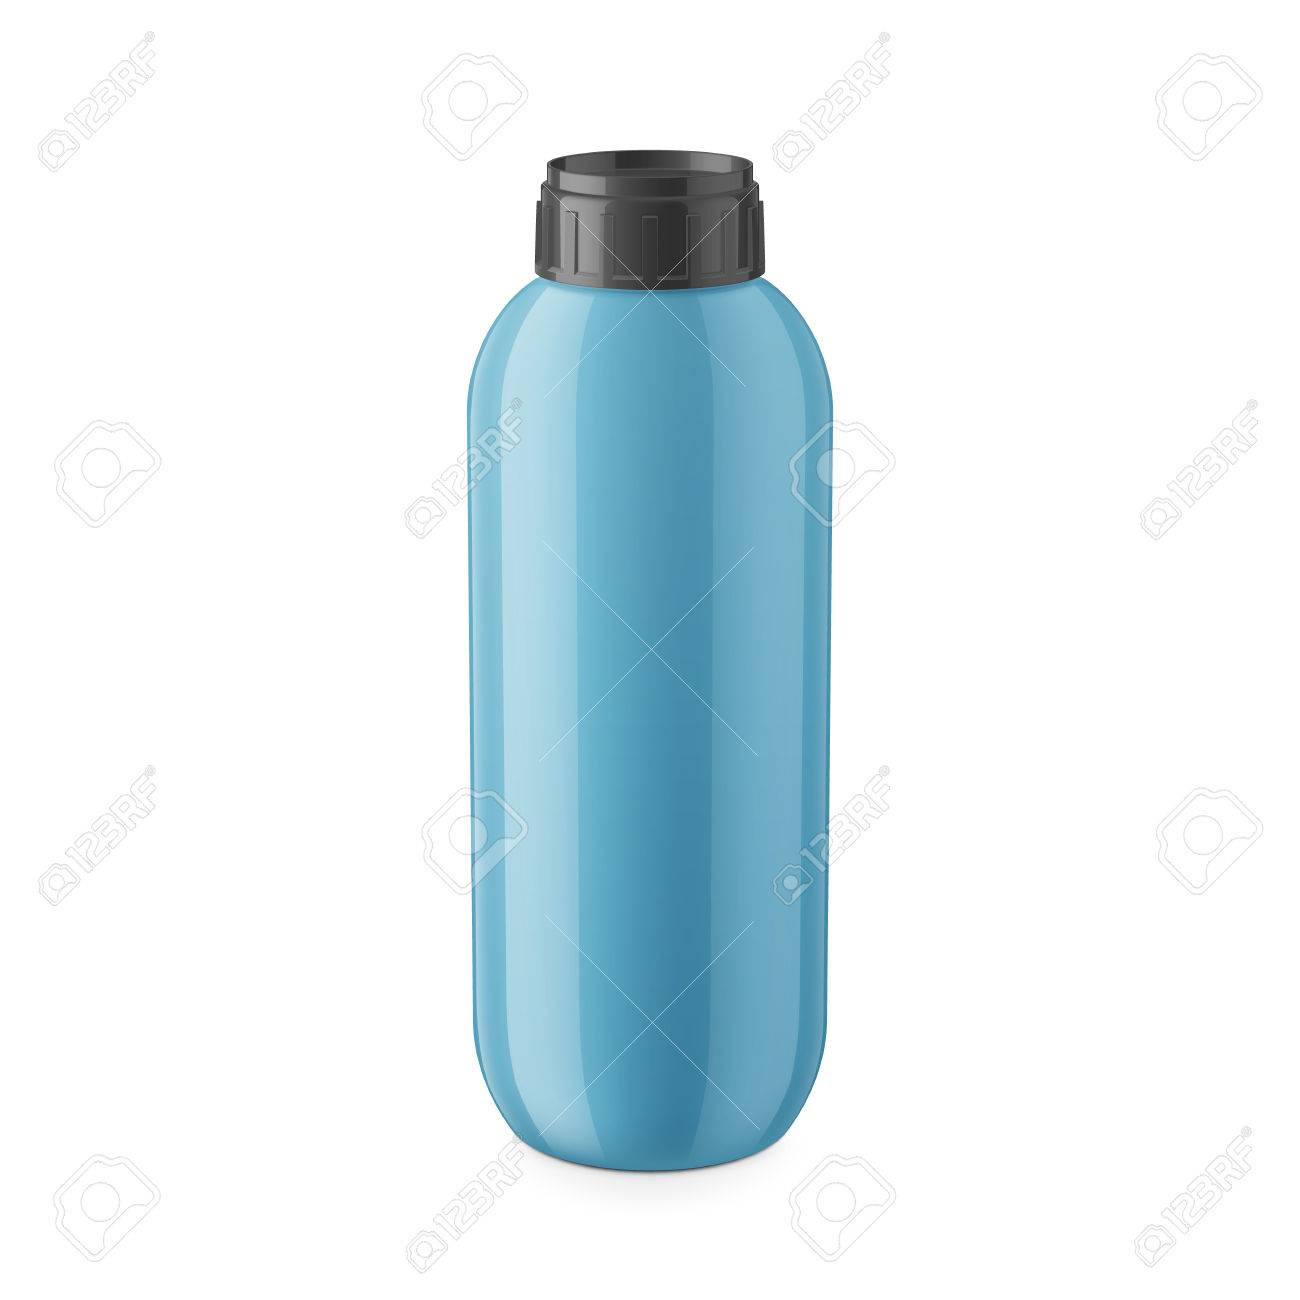 Round Blue Glossy Plastic Bottle With Black Cap For Shampoo Balm